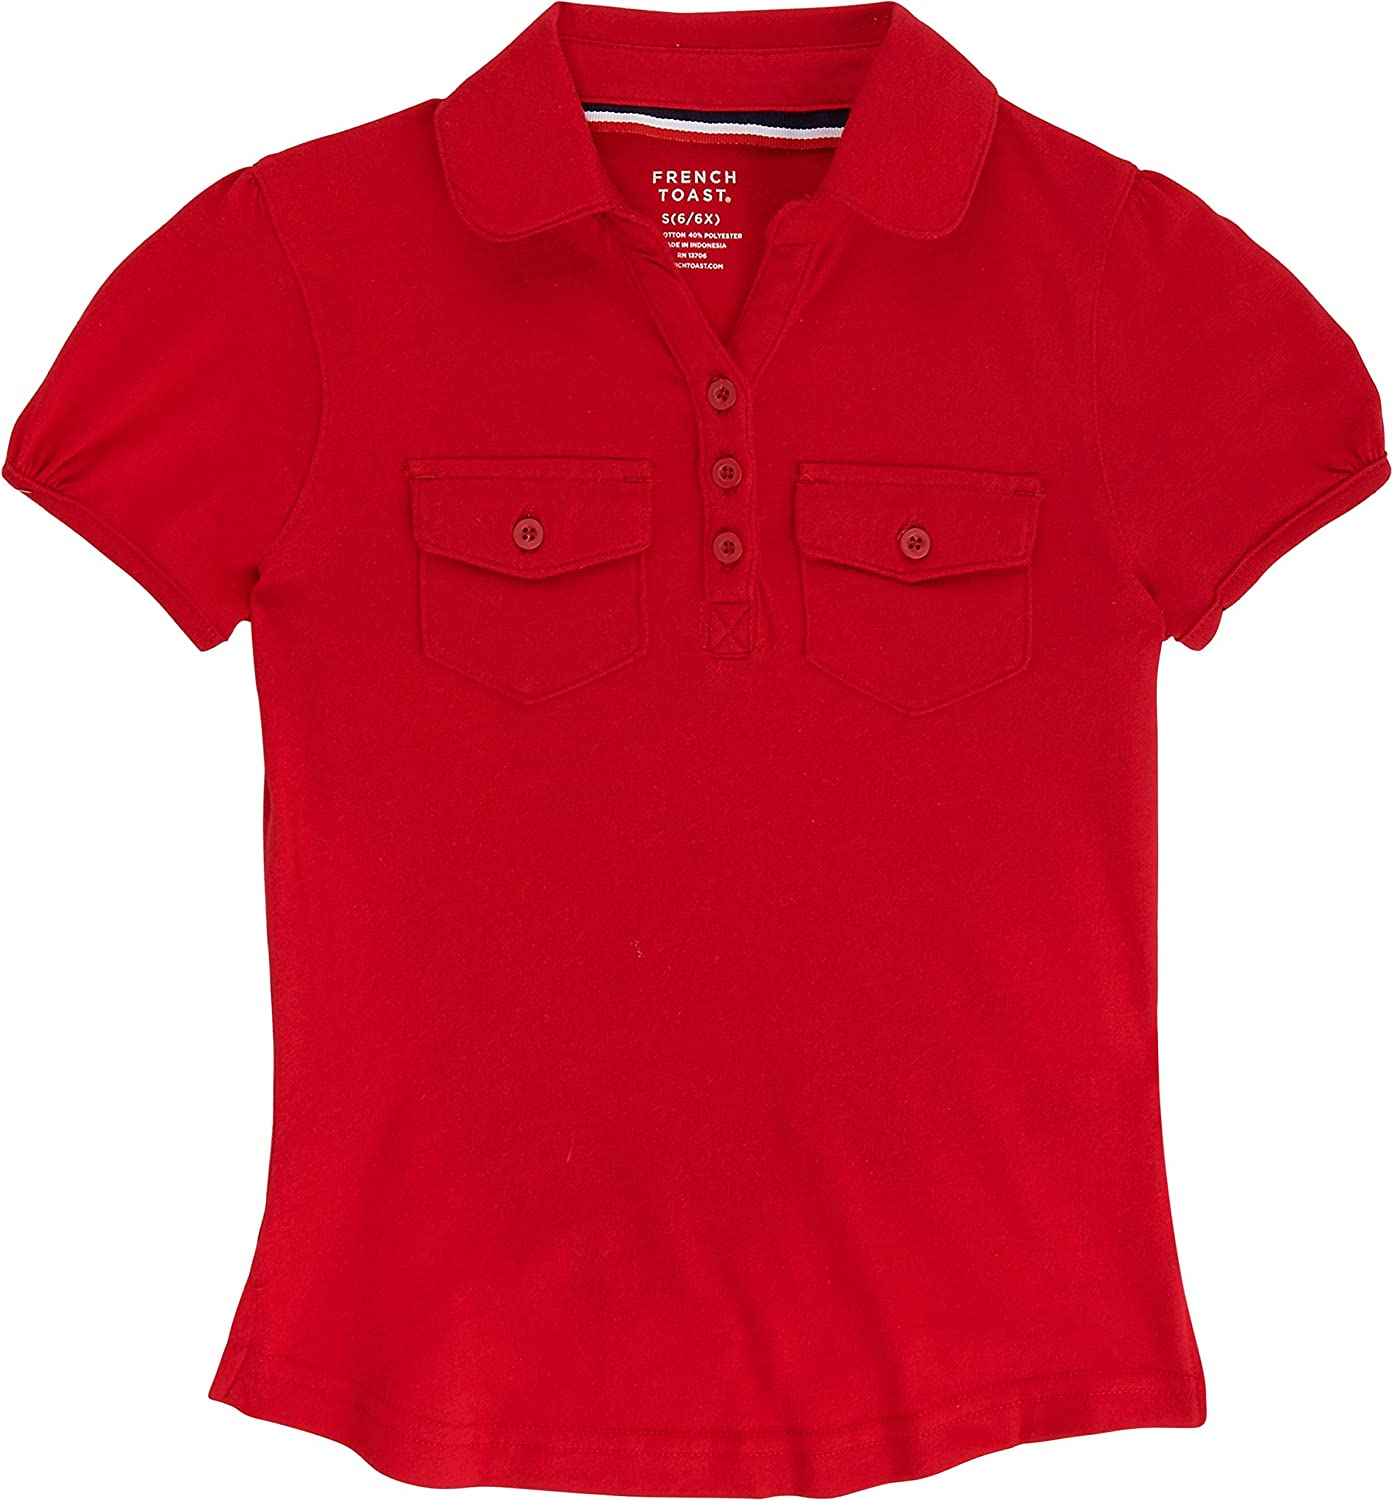 French Toast School Uniform Girls Short Sleeve Double Pocket Polo Shirt